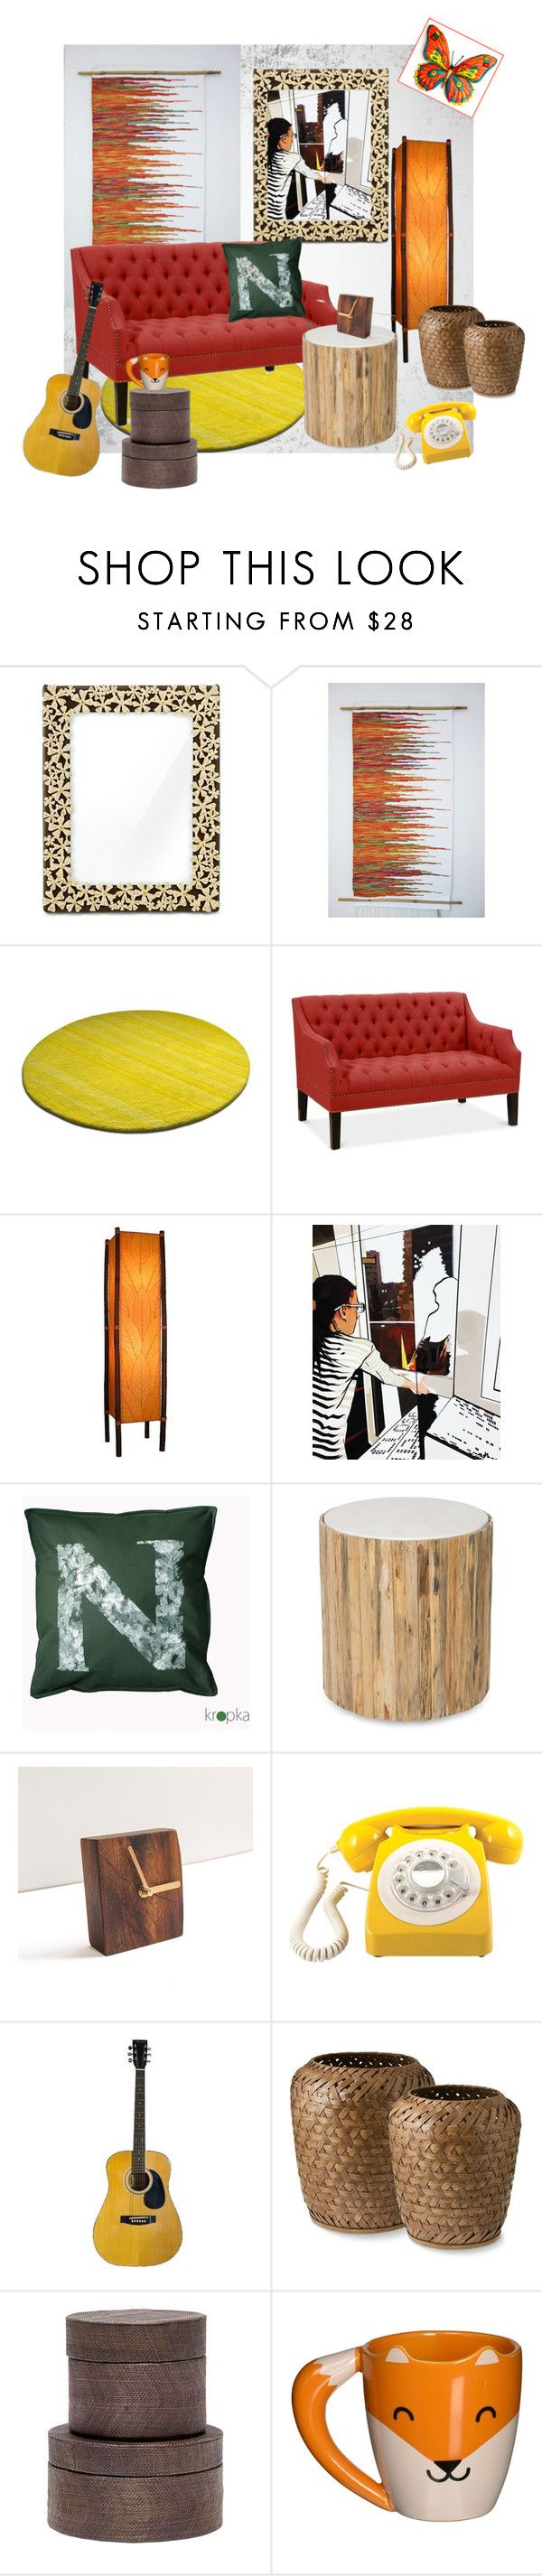 """""""Home Sweet Home"""" by agnkam ❤ liked on Polyvore featuring interior, interiors, interior design, home, home decor, interior decorating, L'Objet, GPO, Pigeon & Poodle and WALL"""